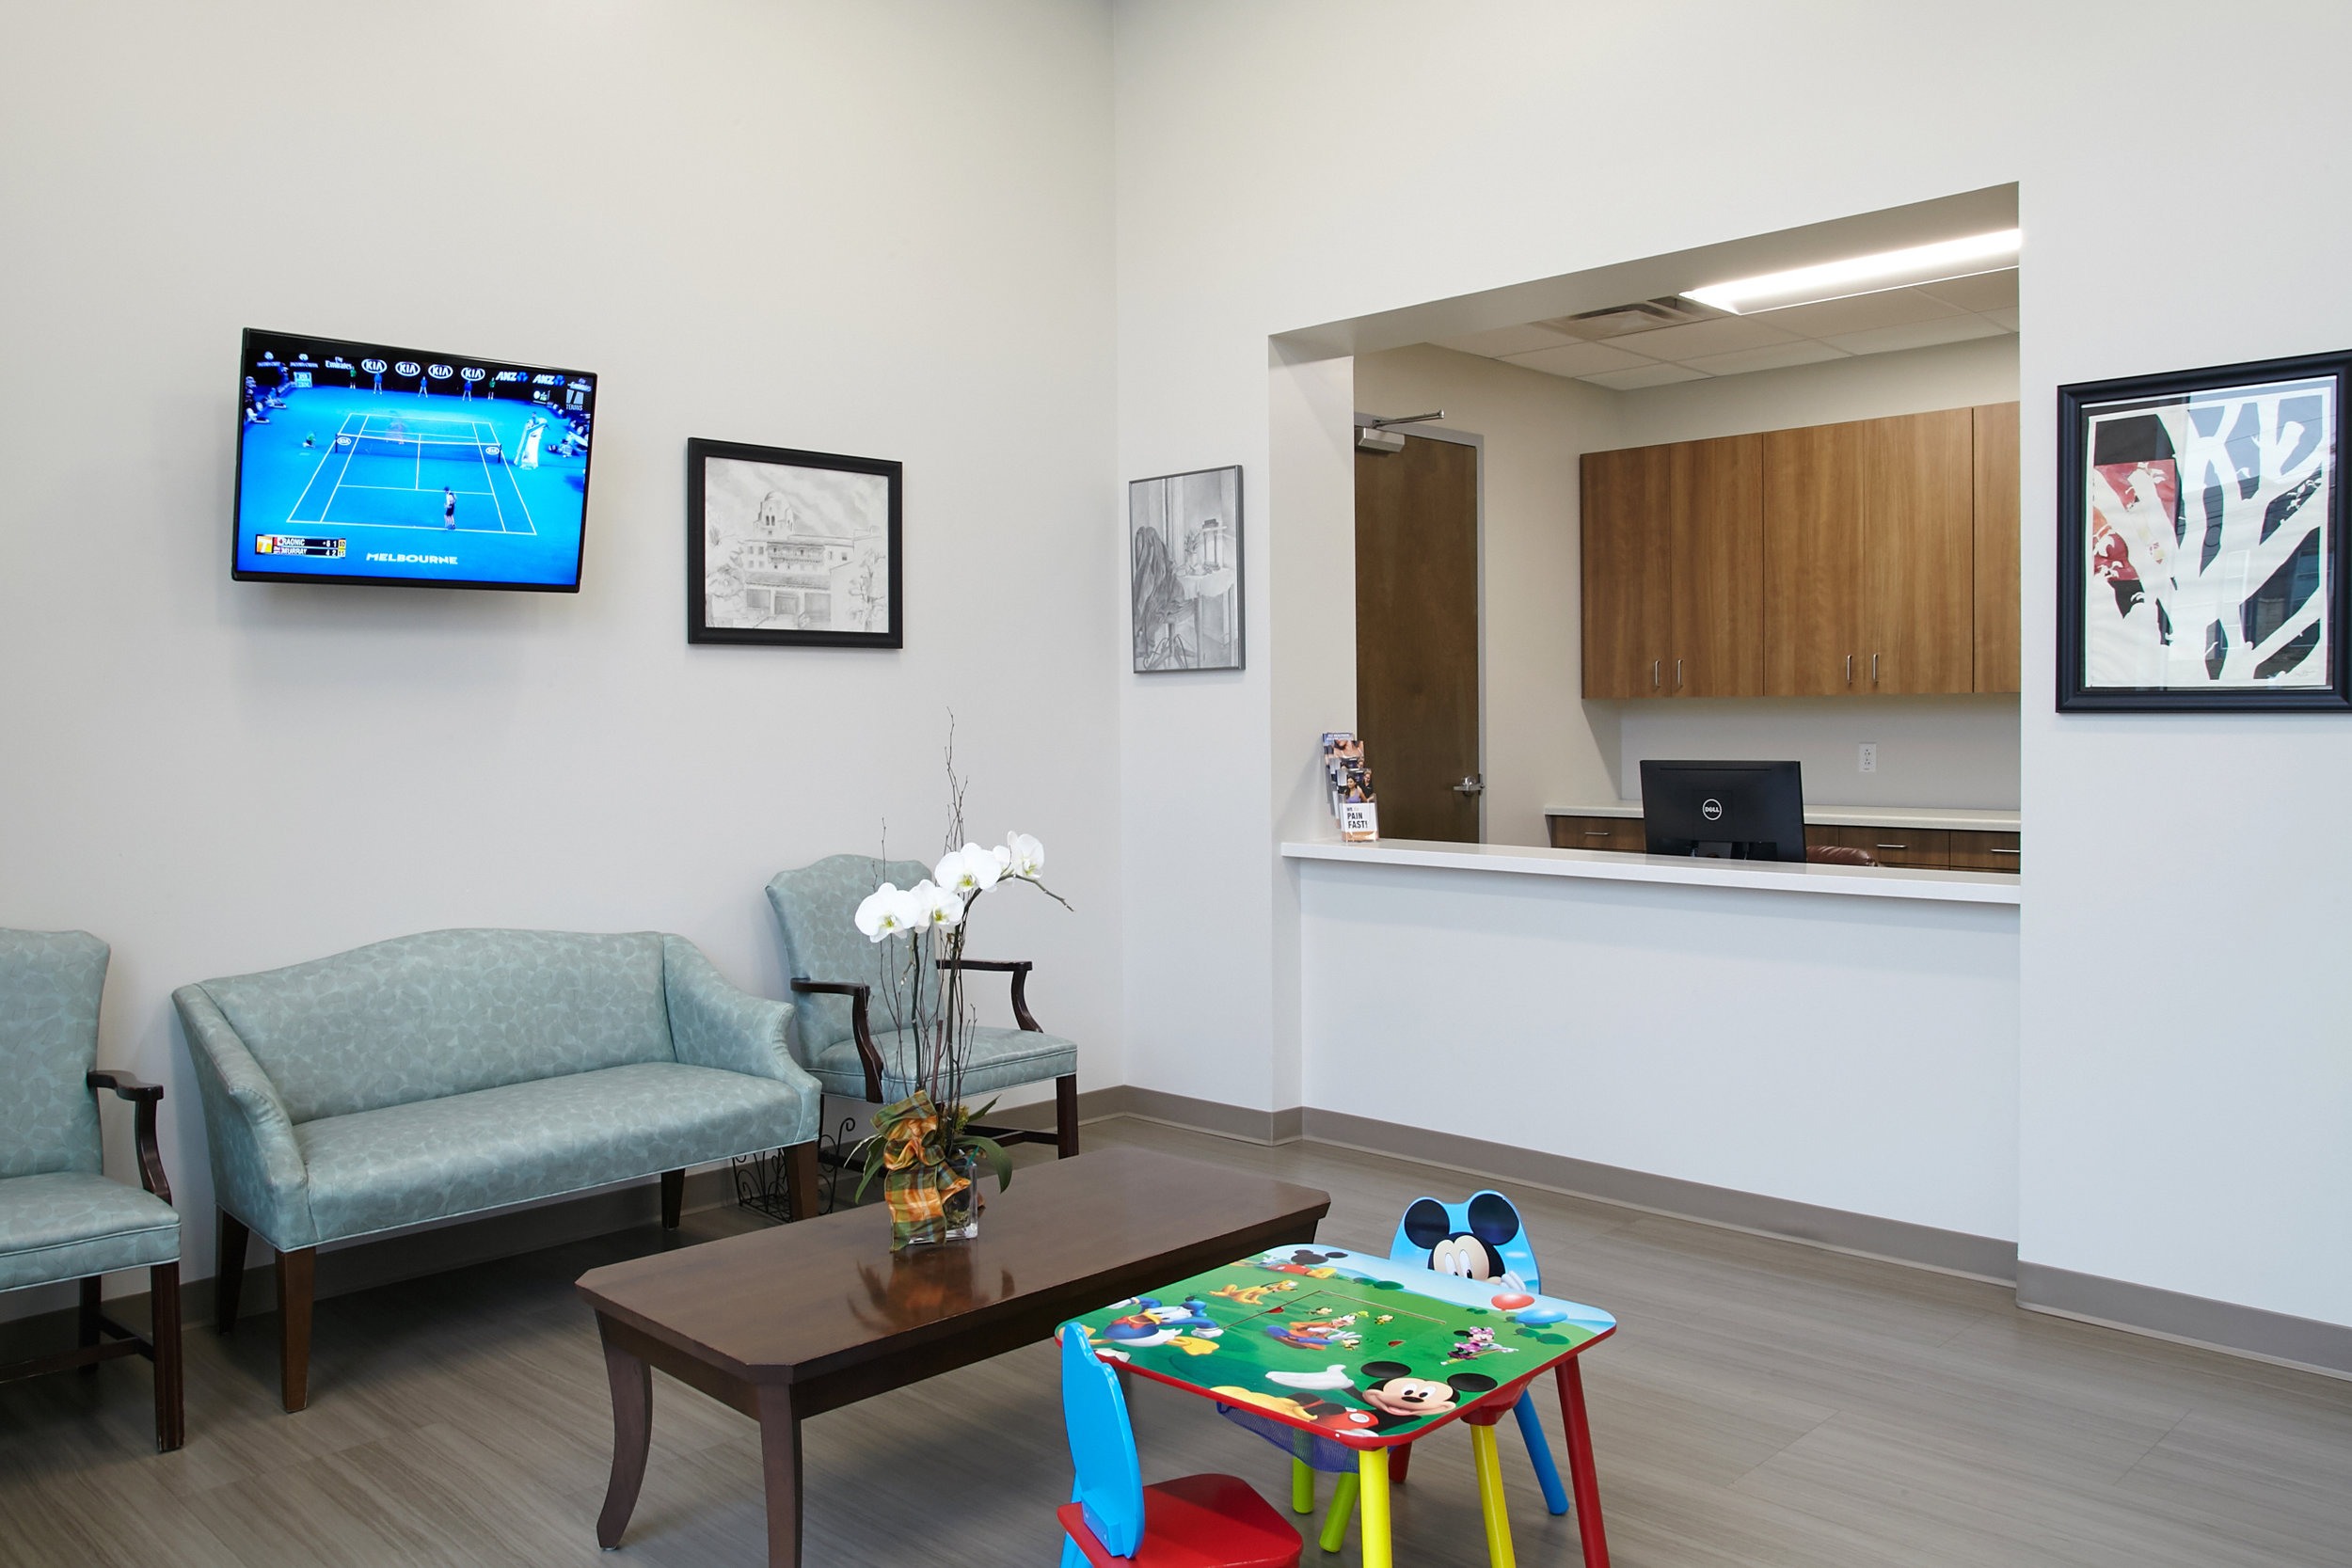 Hill Country Urgent Care_MG_1146.jpg